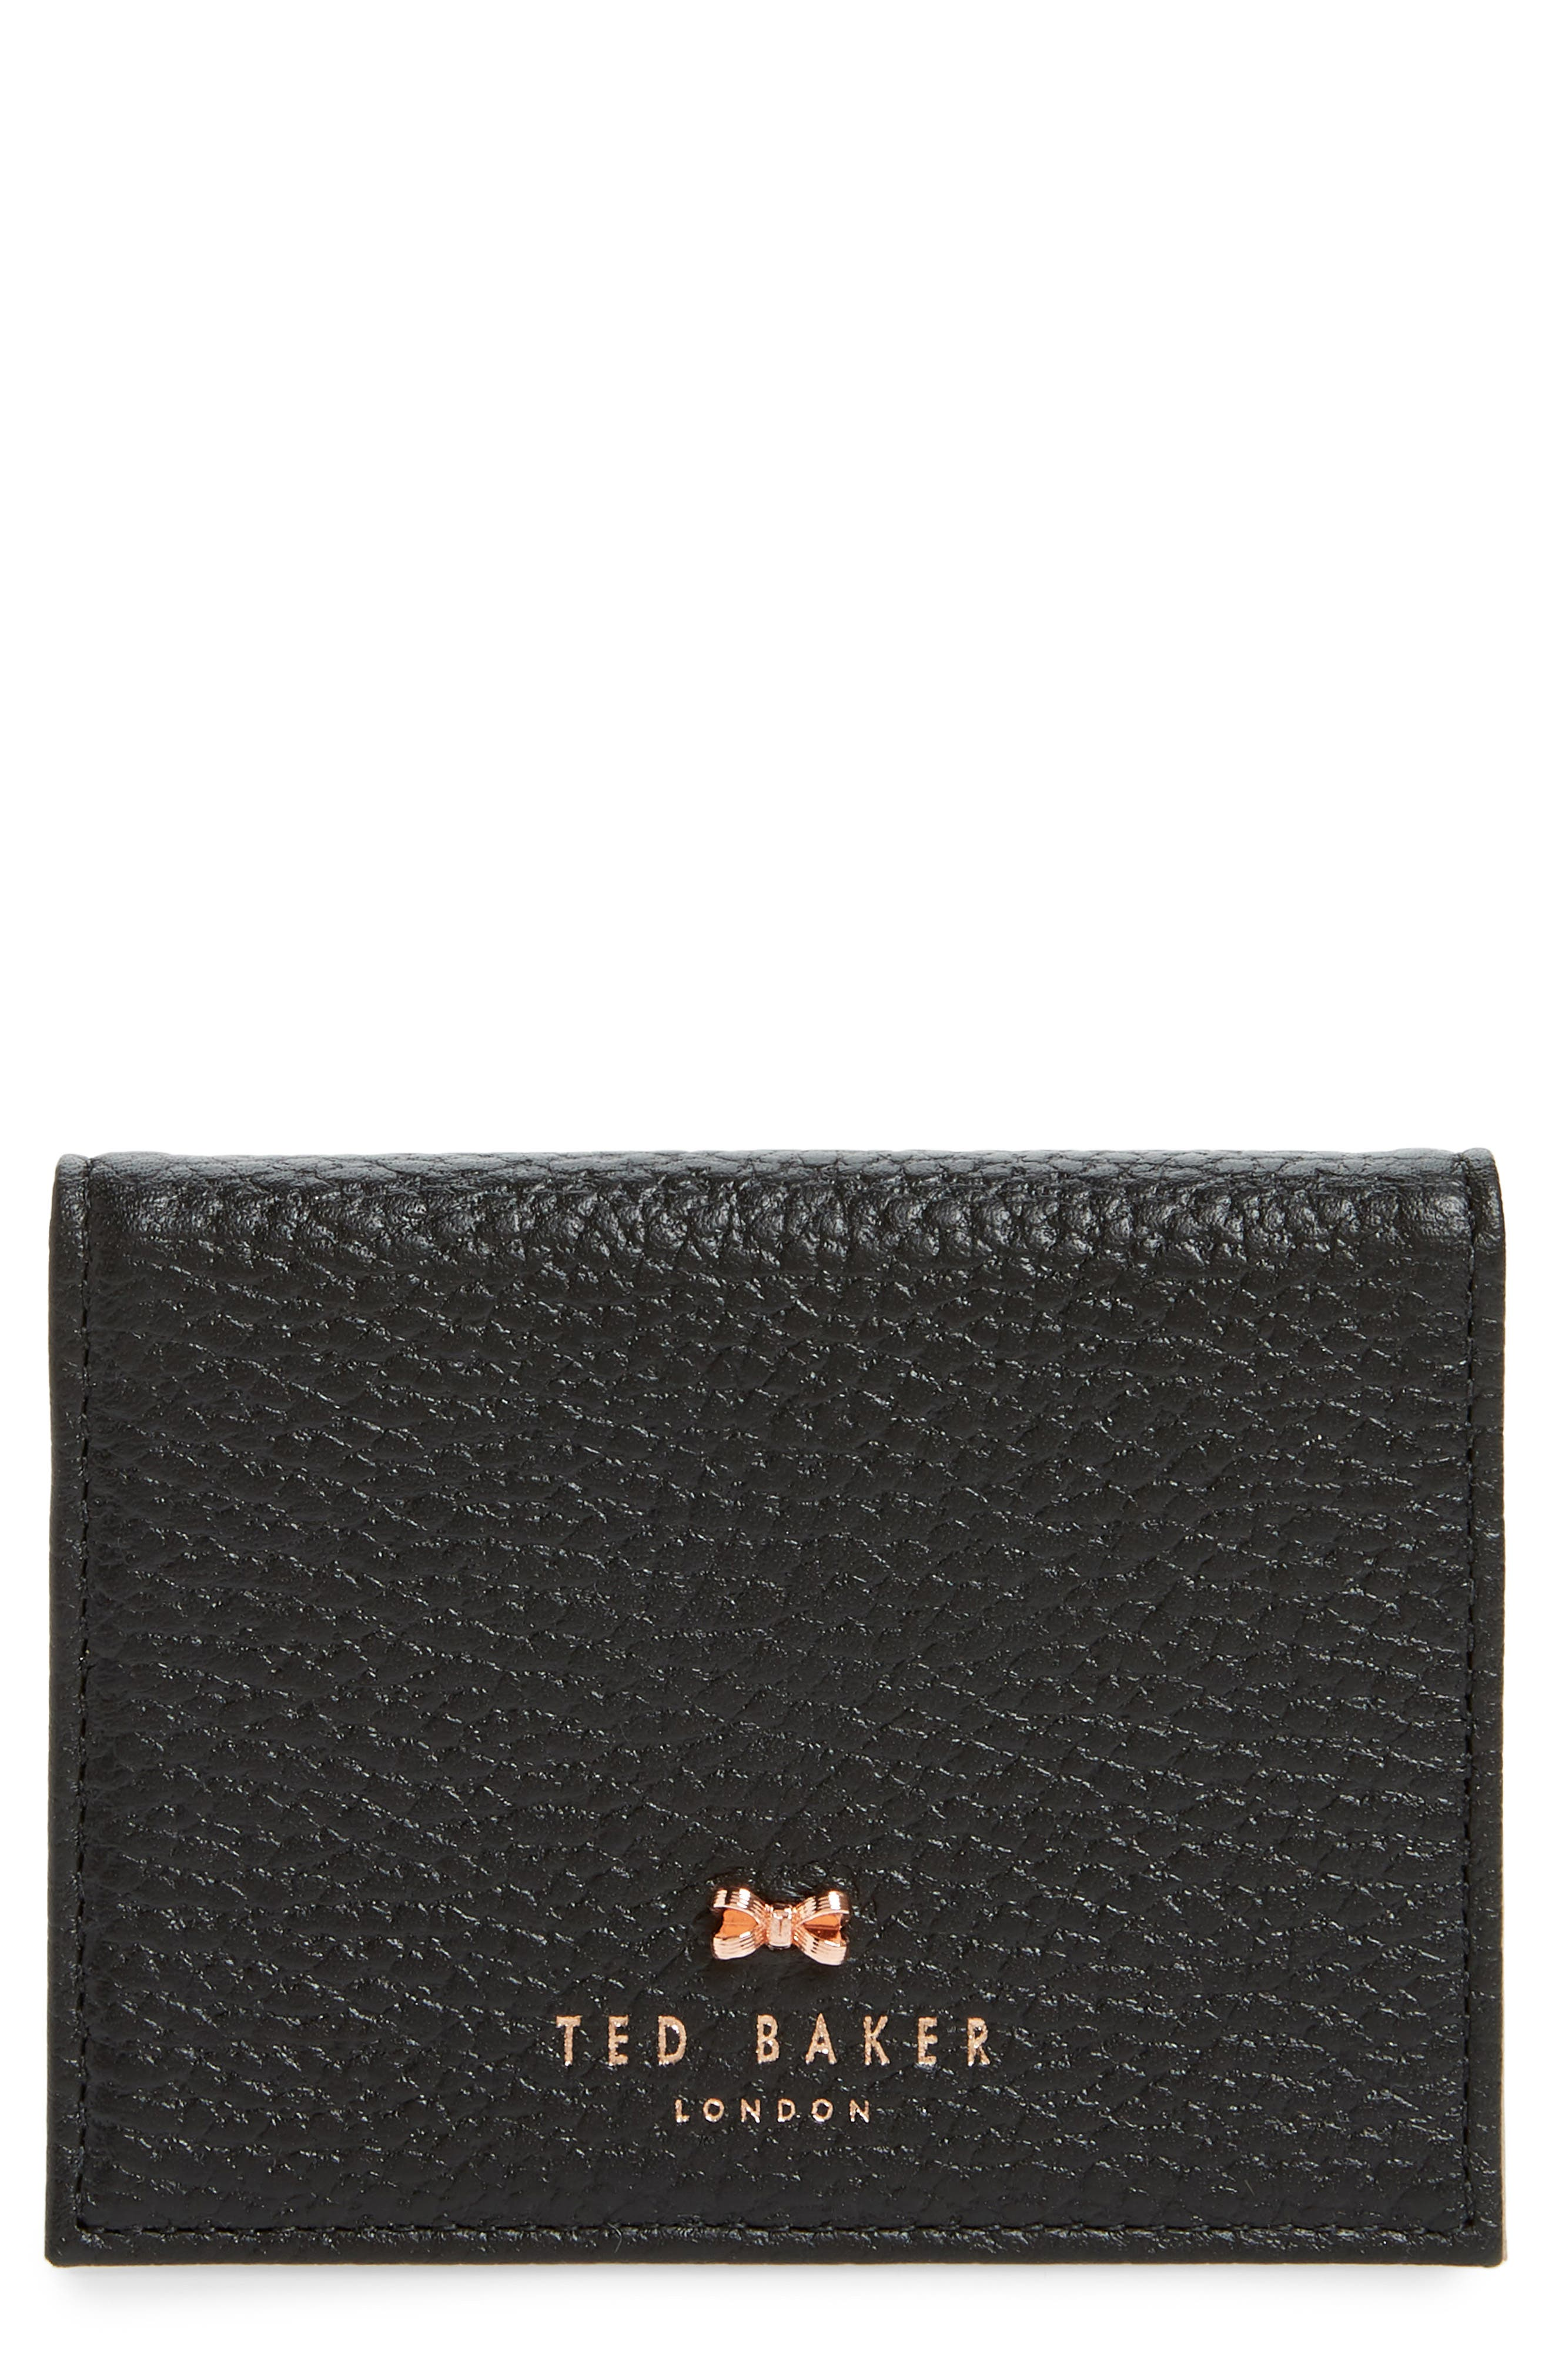 TED BAKER LONDON Edyth Leather Cardholder with Mirror, Main, color, 001